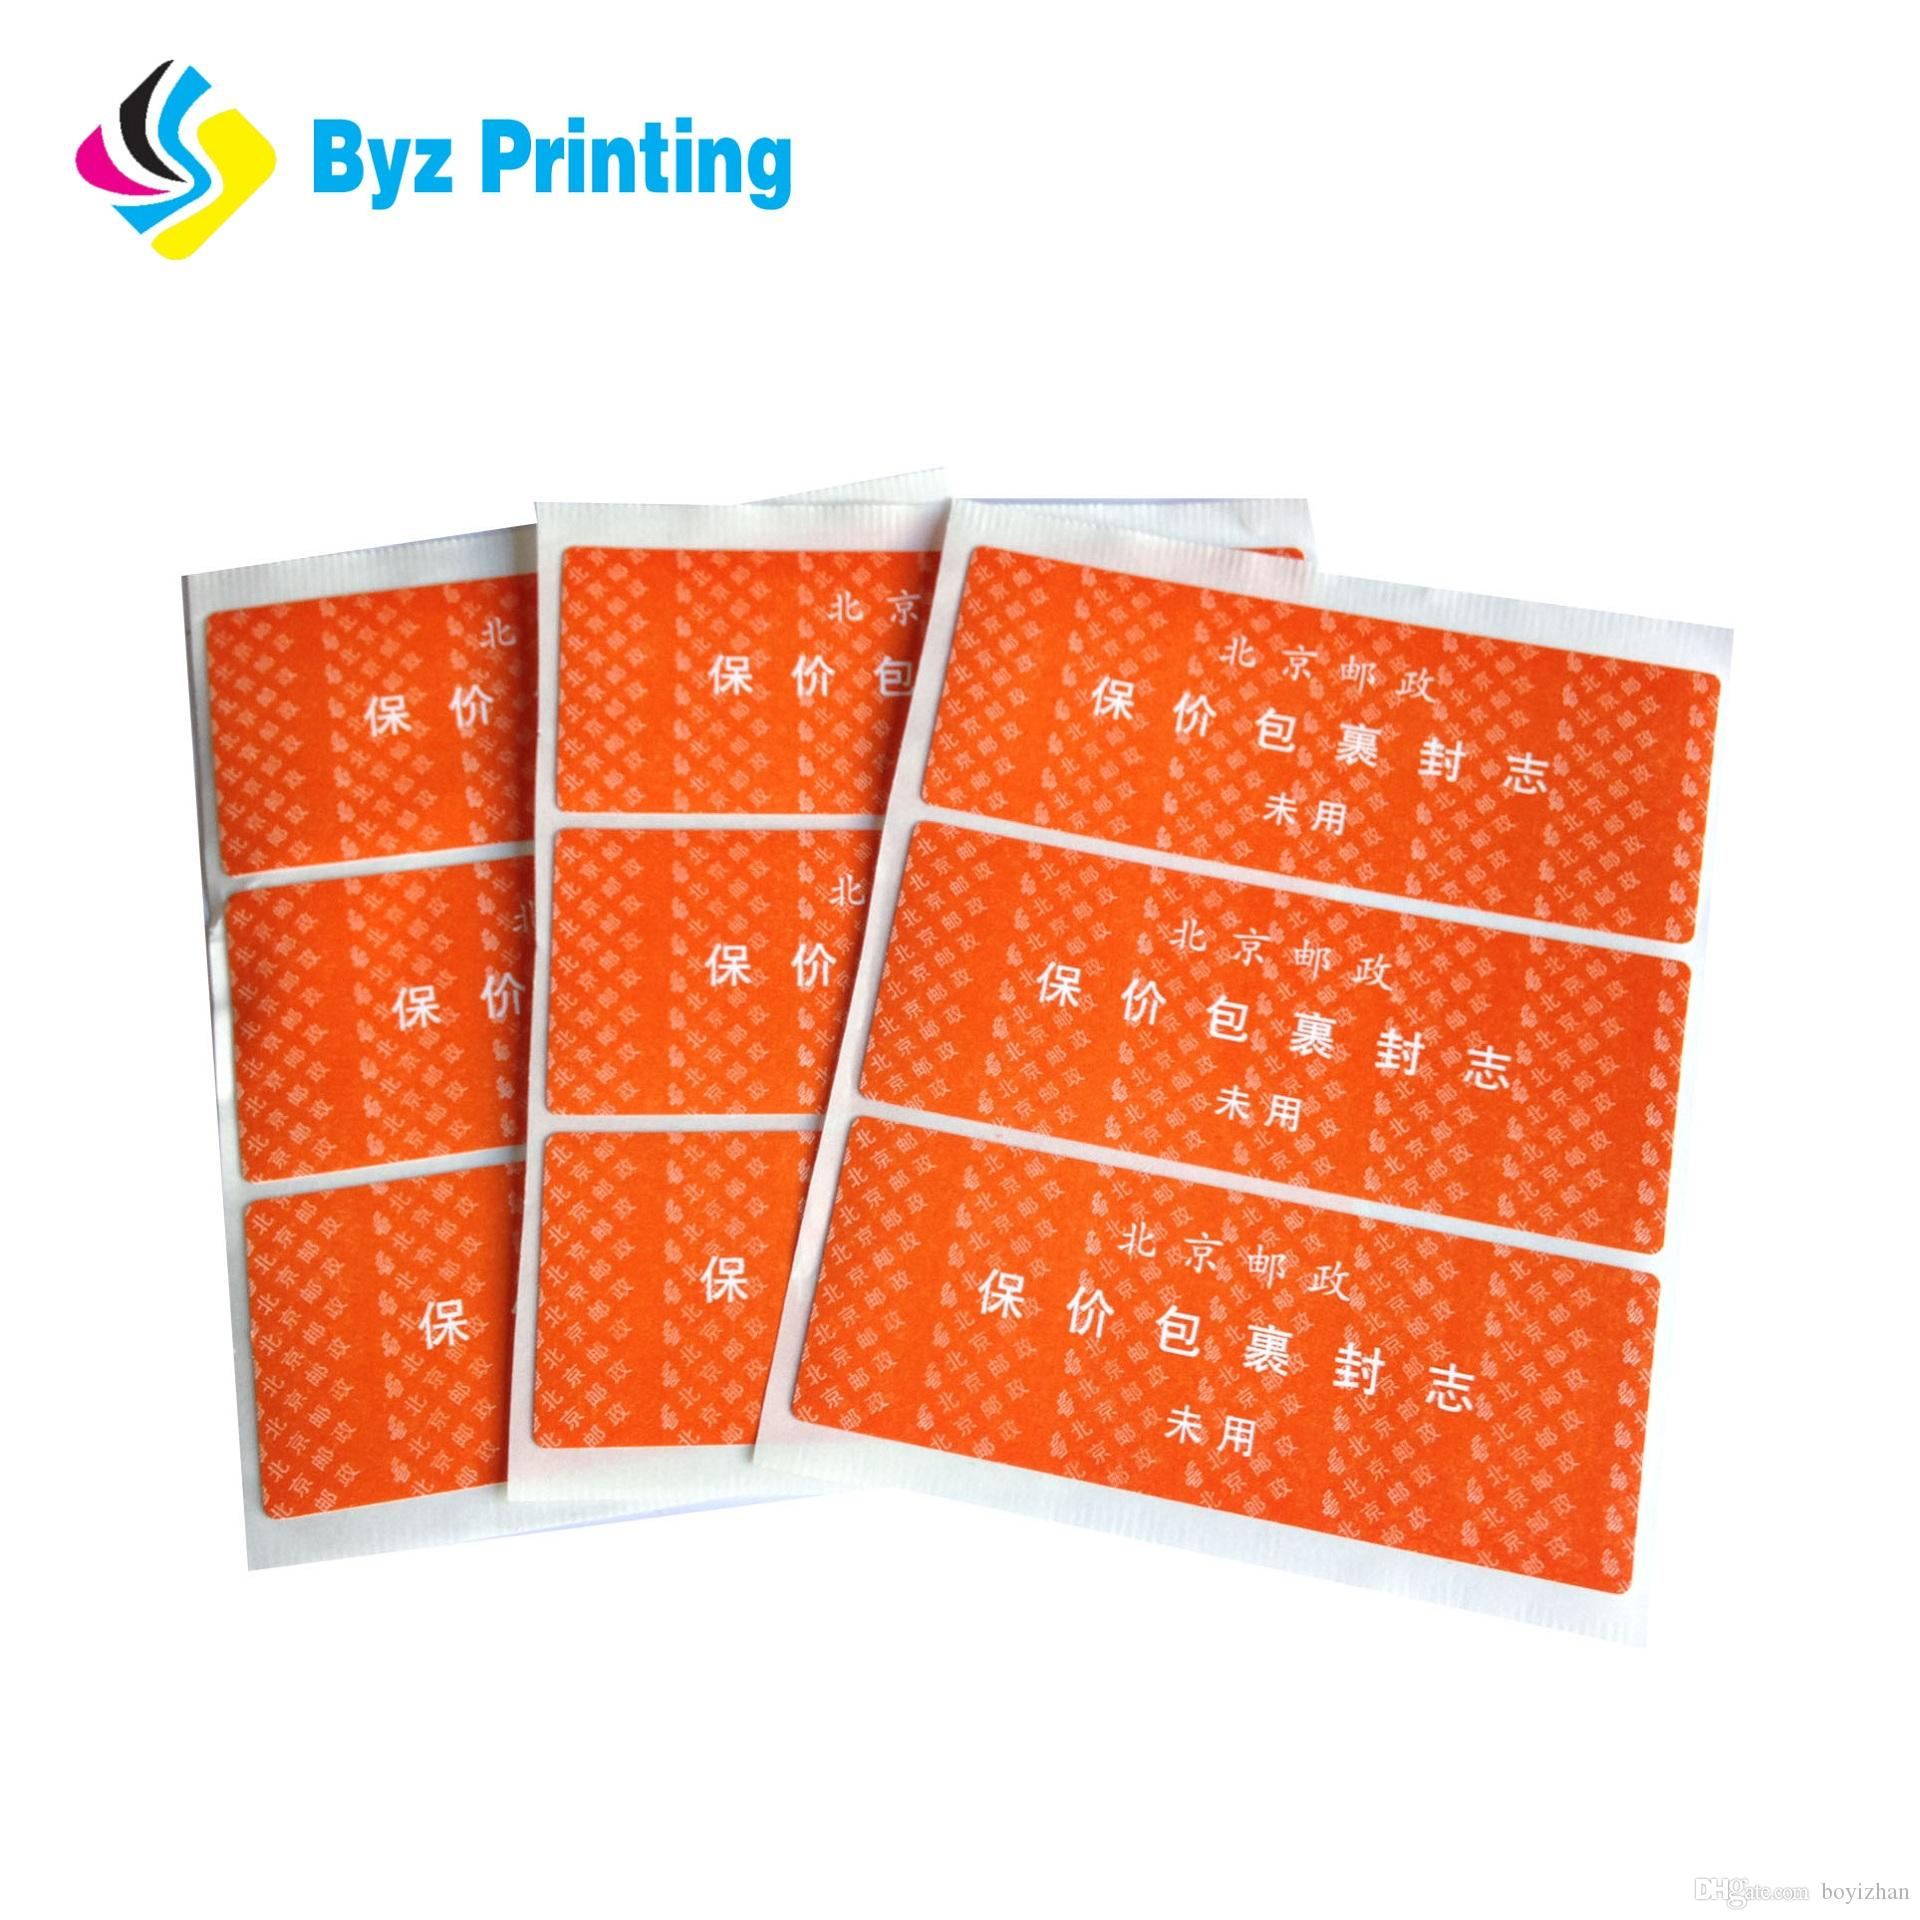 Full color printing oem advertising stickers uv resistant outdoor advertising sticker label